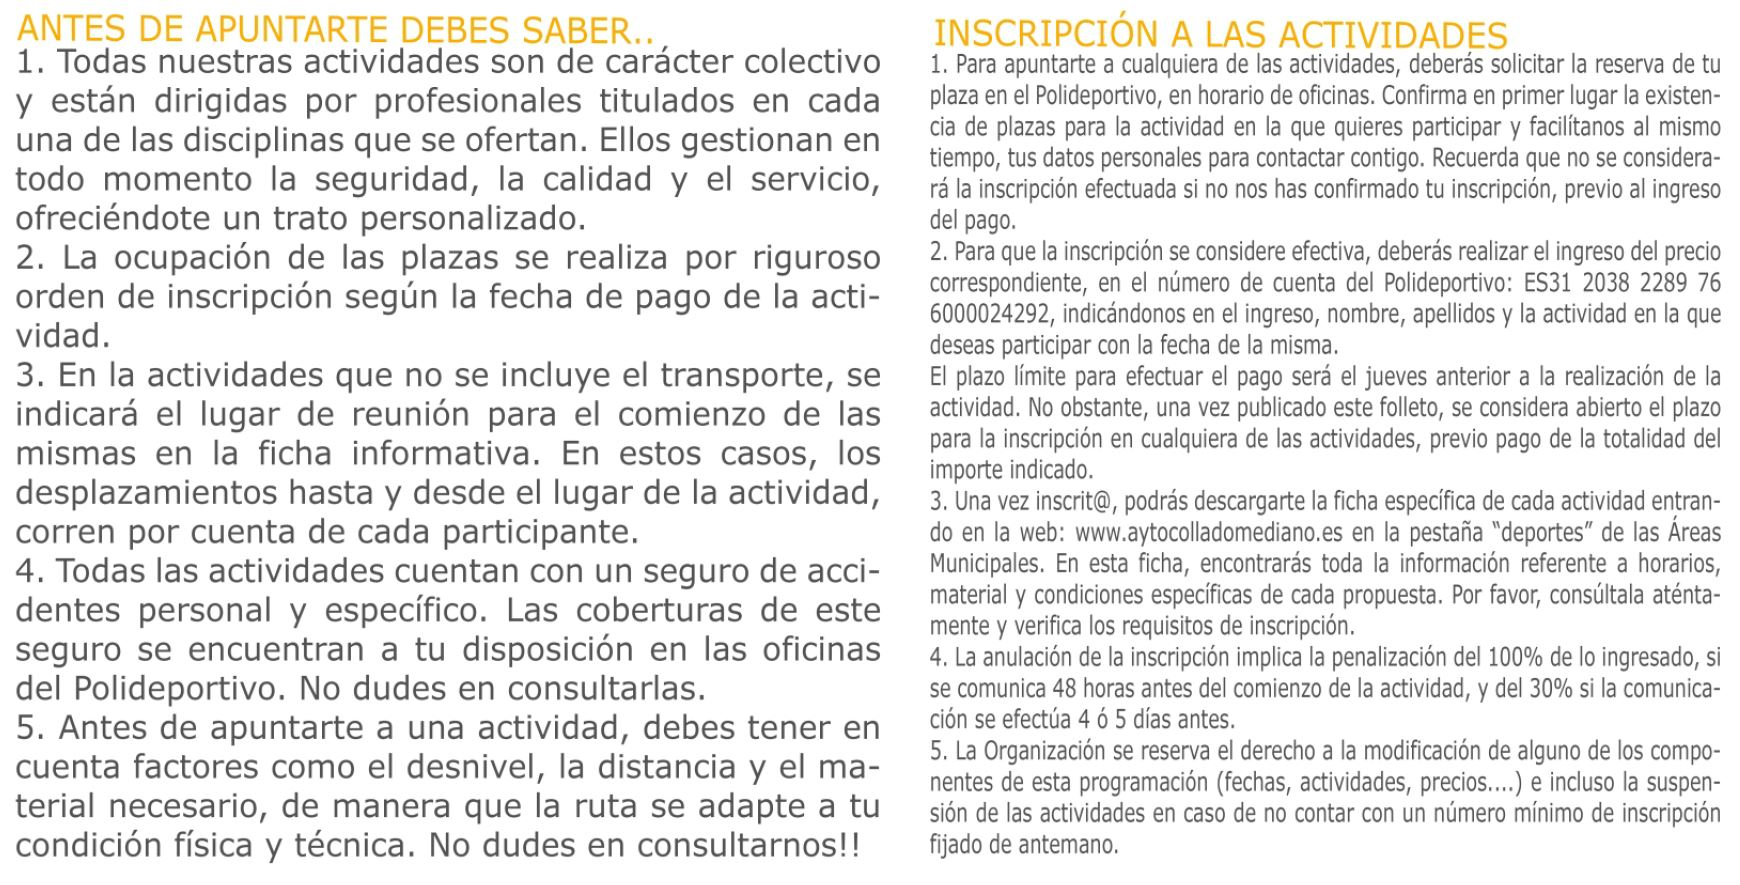 inscripcion0120